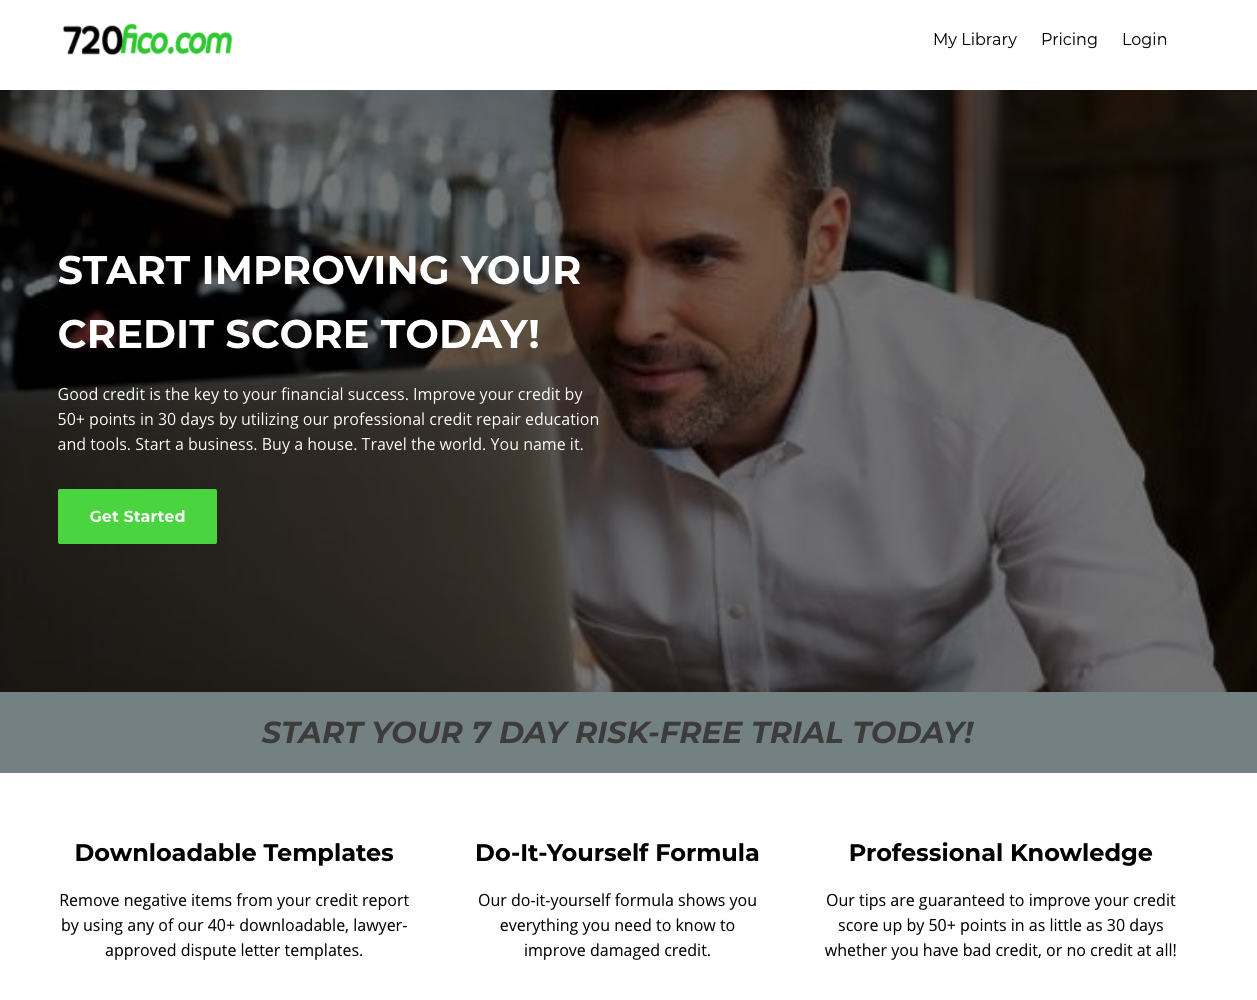 Screenshot of 720fico.com, a site aimed at helping people improve their credit score.